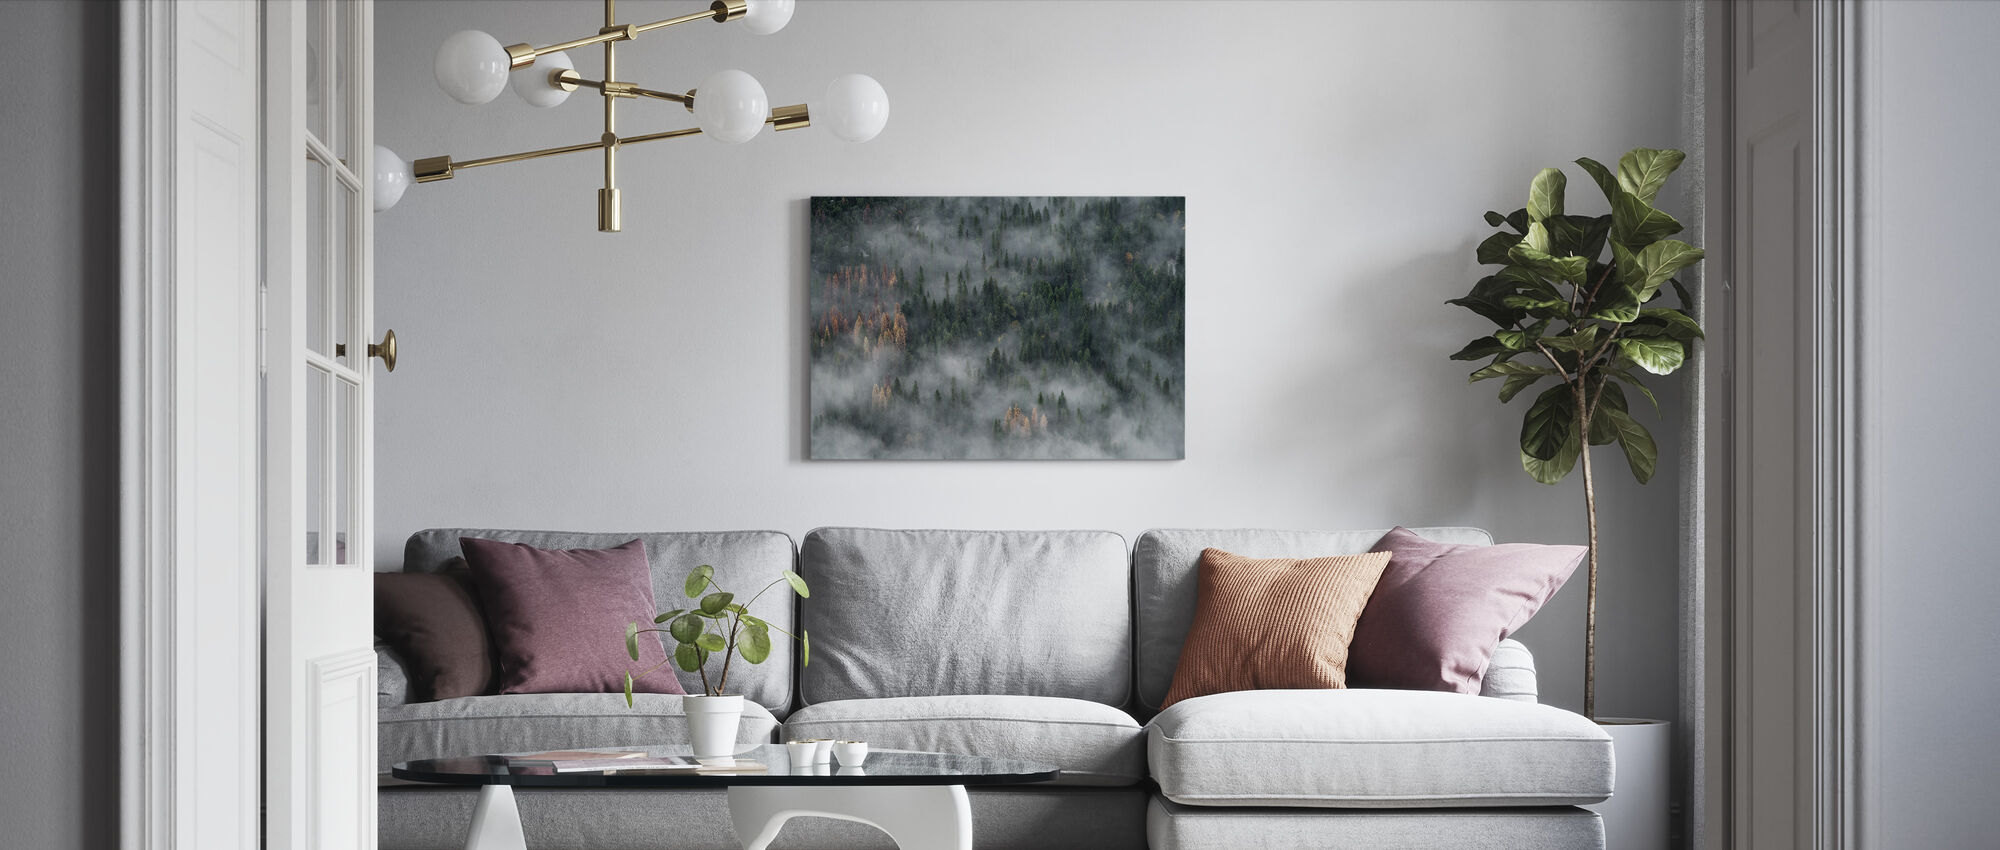 Pine Trees Forest - Canvas print - Living Room